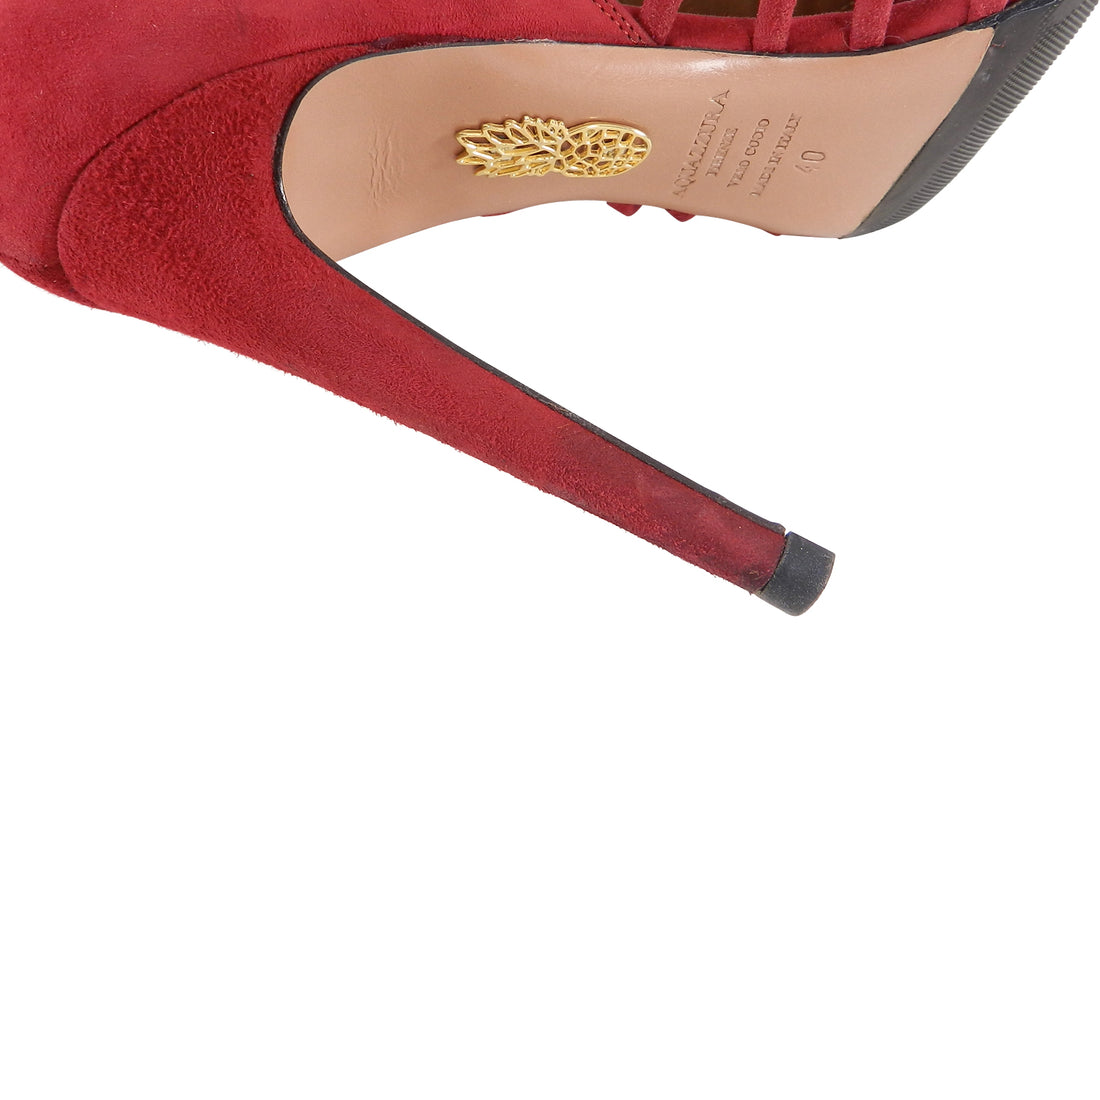 Aquazzura Red Suede Cut out Ankle Shoe / Heels - 40